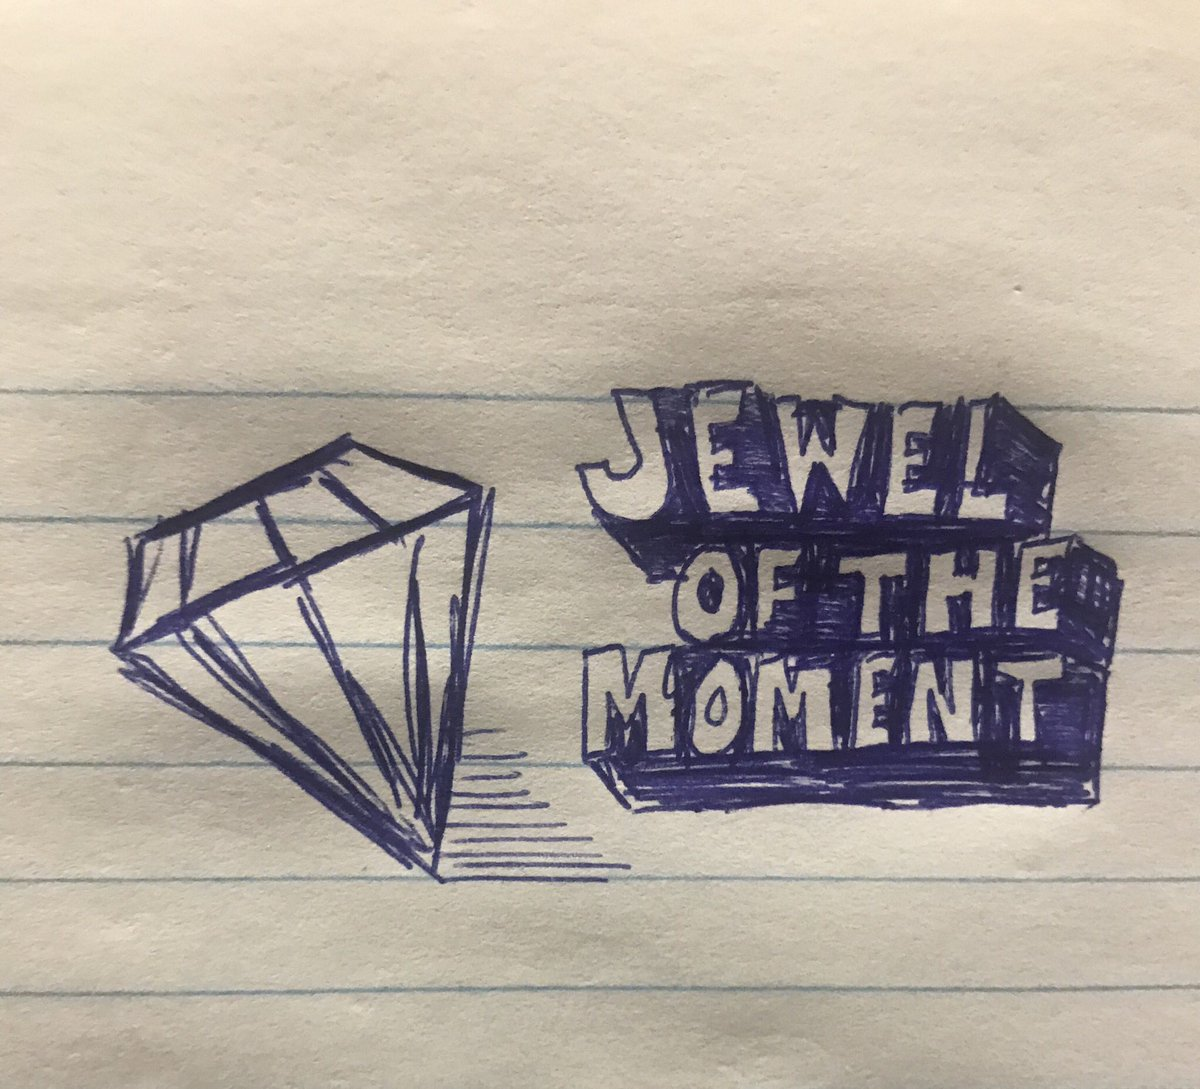 Jewel of the moment  #jewelofthemoment #randomthoughts #aimlow #avoiddisappointment #compositionbookchronicles #conquesopublishing #cqcomics #comics #webcomic #comix #sketch #sketchbook